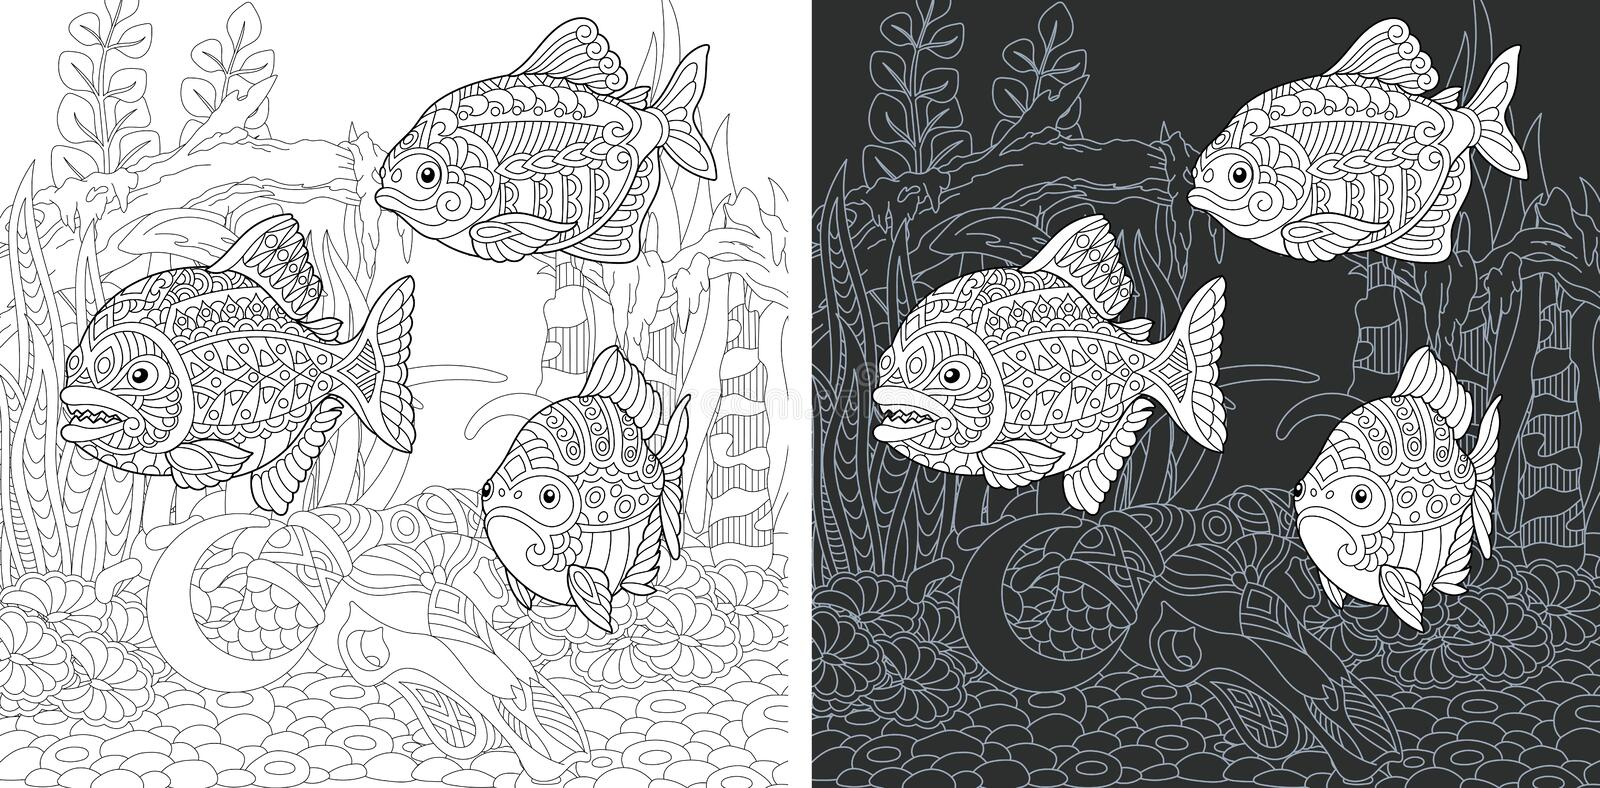 Coloring pages with Piranha Fish stock images